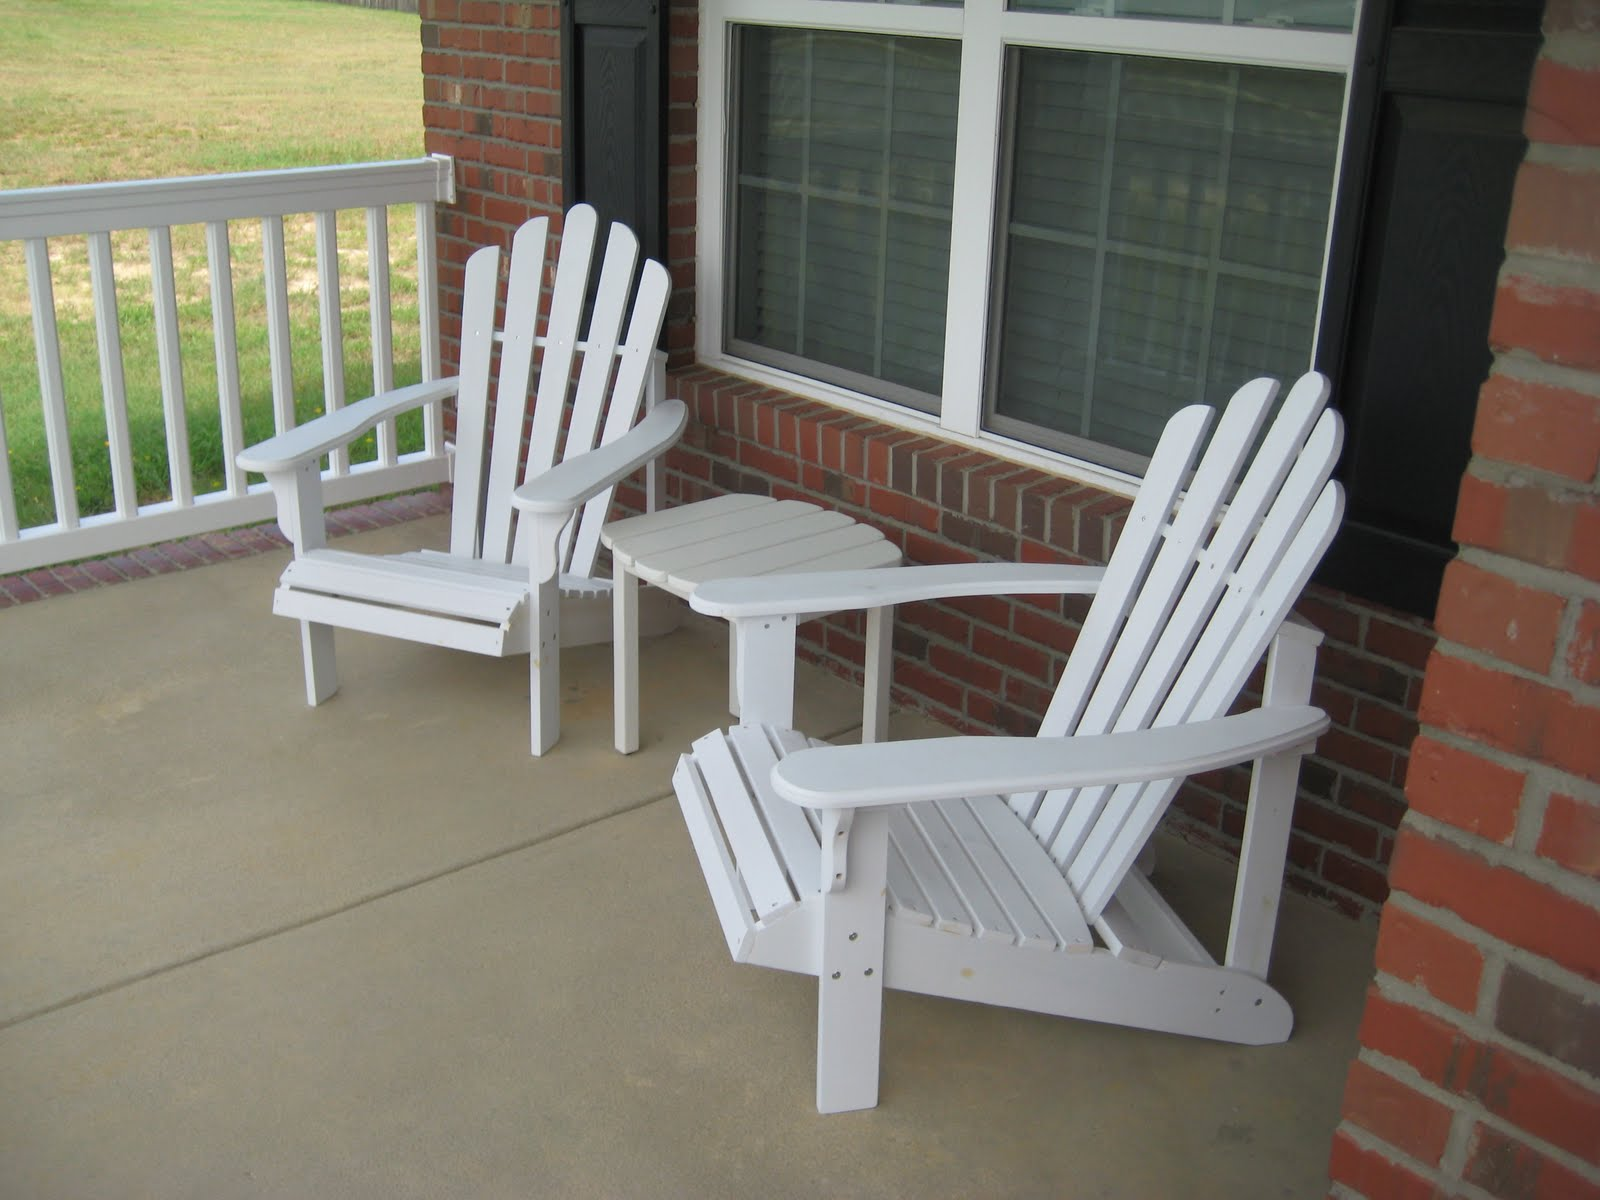 family of 3...: New front porch furniture!